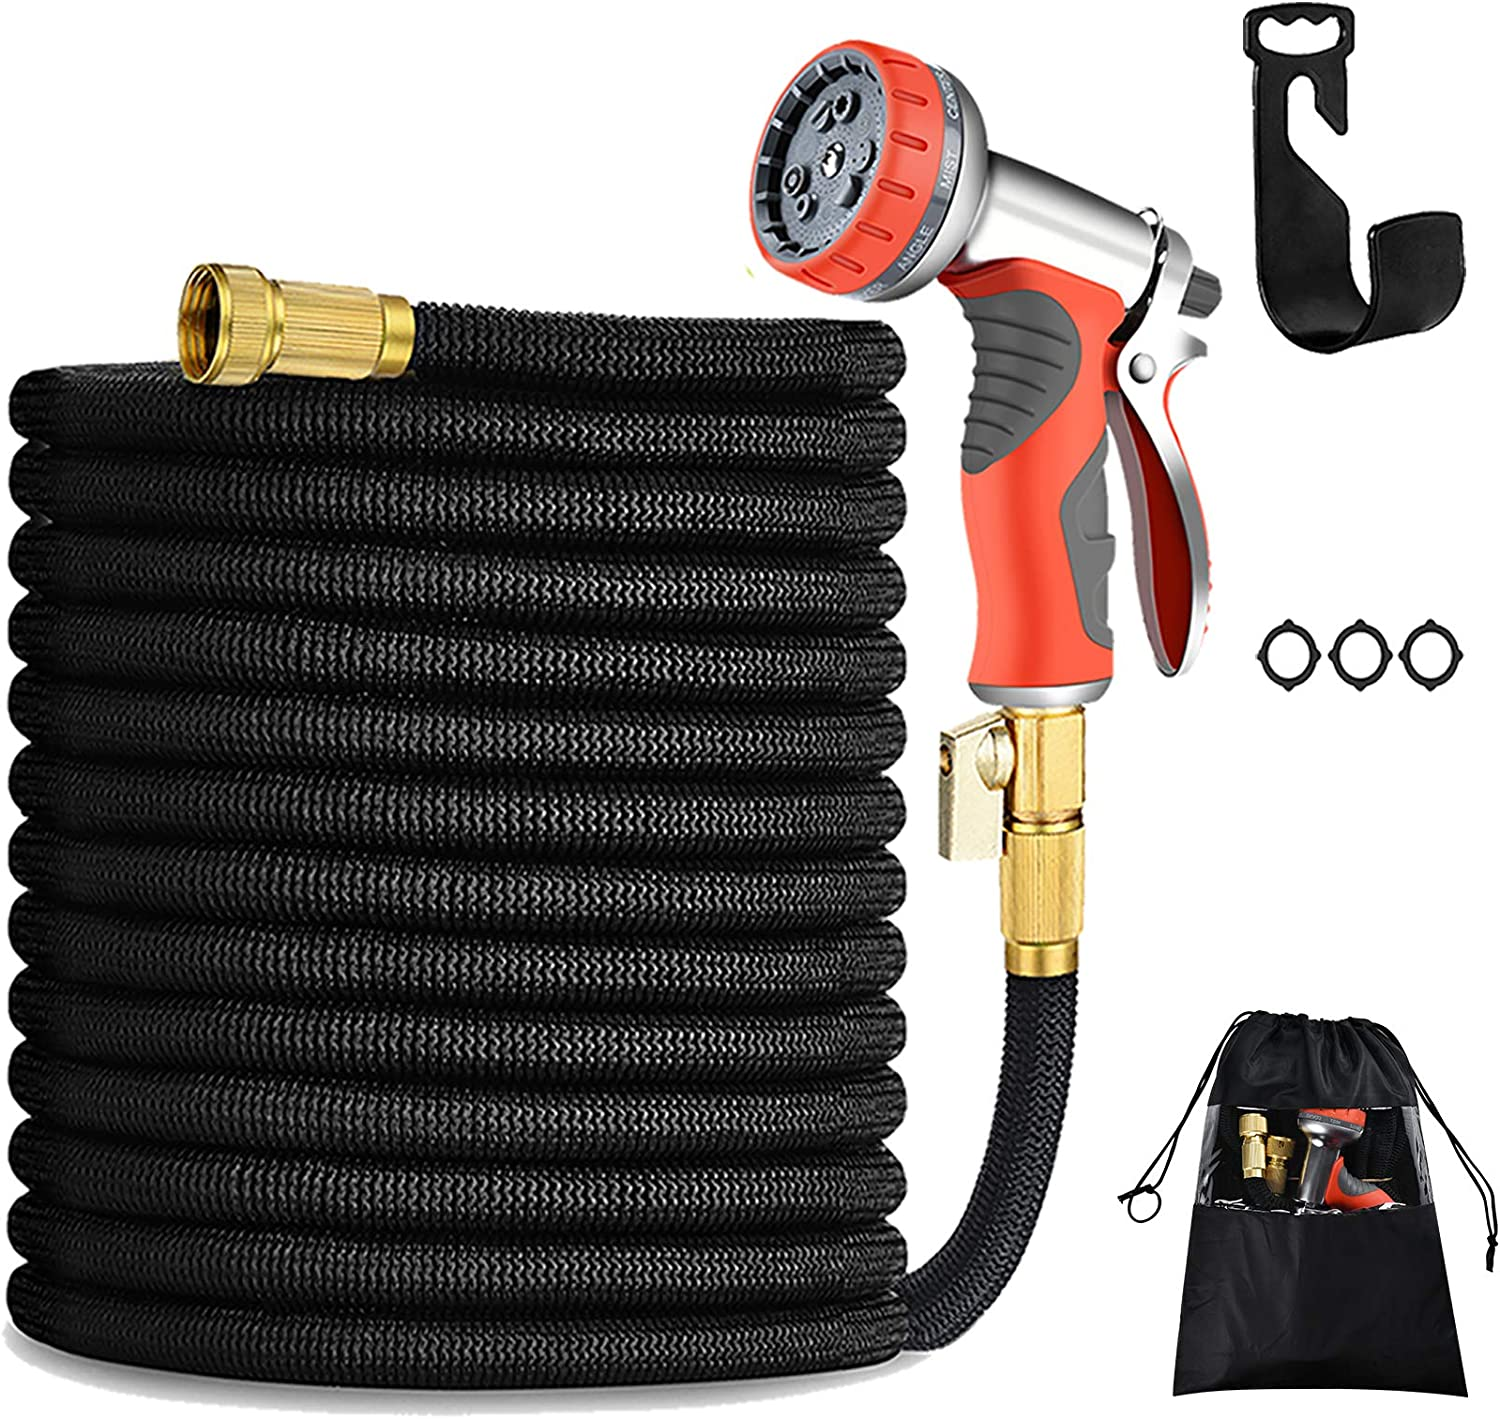 "100FT Expandable Garden Hose Durable No-Kink Flexible Garden Water Hose Set 3/4"" Solid Brass Fittings, 4-Layers Latex,3750D Extra Strength Fabric with Heavy Duty Metal Watering Patterns. (100FT-B)"